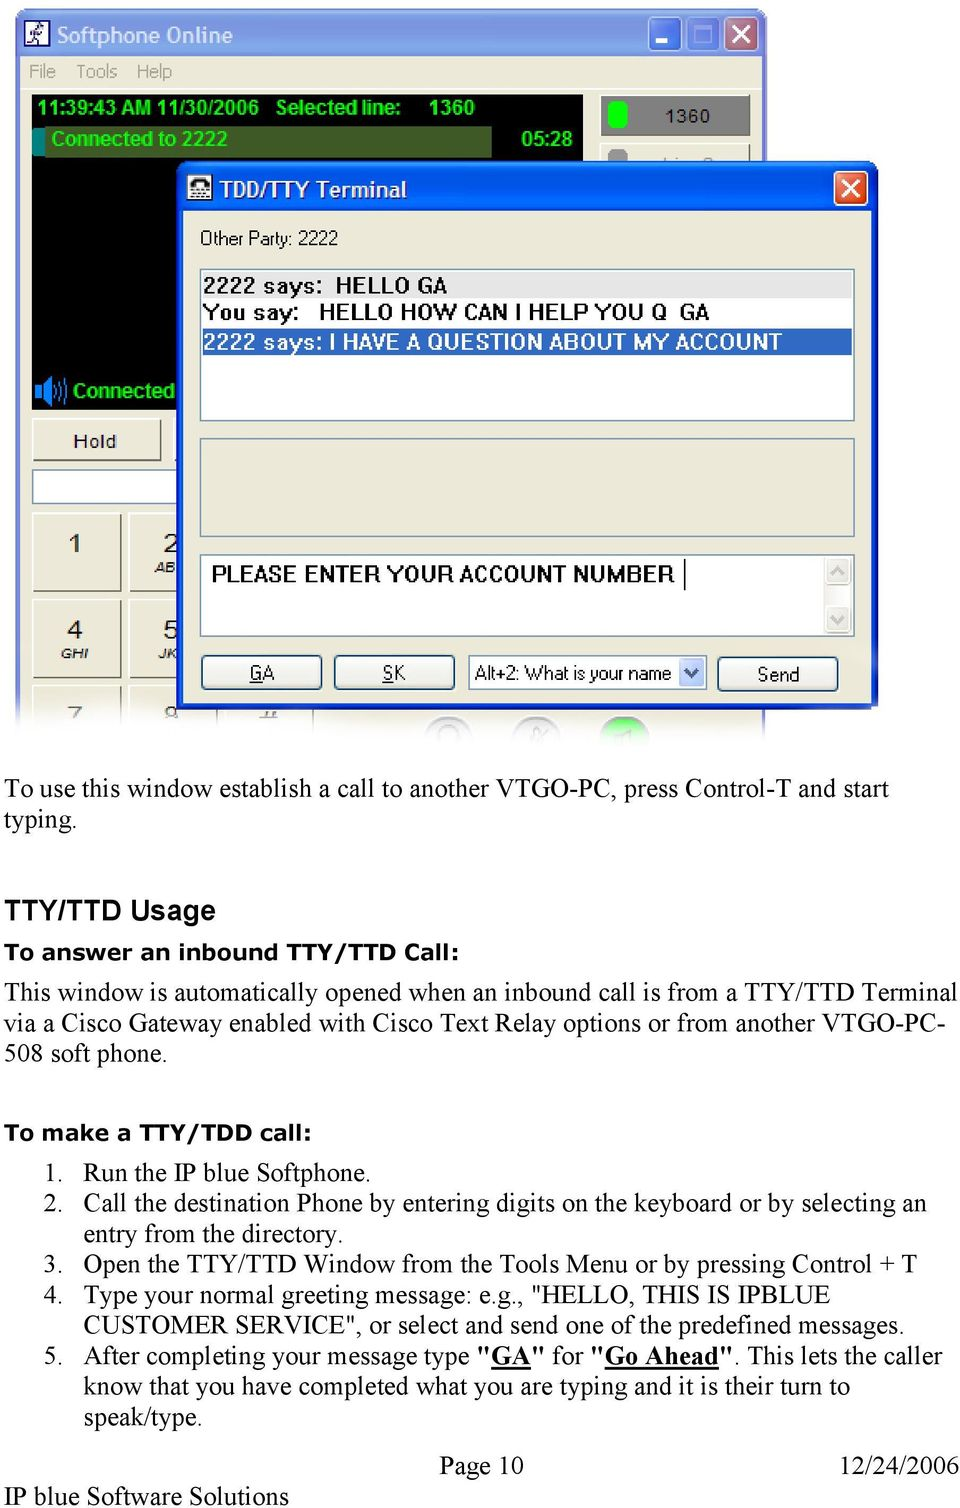 another VTGO-PC- 508 soft phone. To make a TTY/TDD call: 1. Run the IP blue Softphone. 2. Call the destination Phone by entering digits on the keyboard or by selecting an entry from the directory. 3.